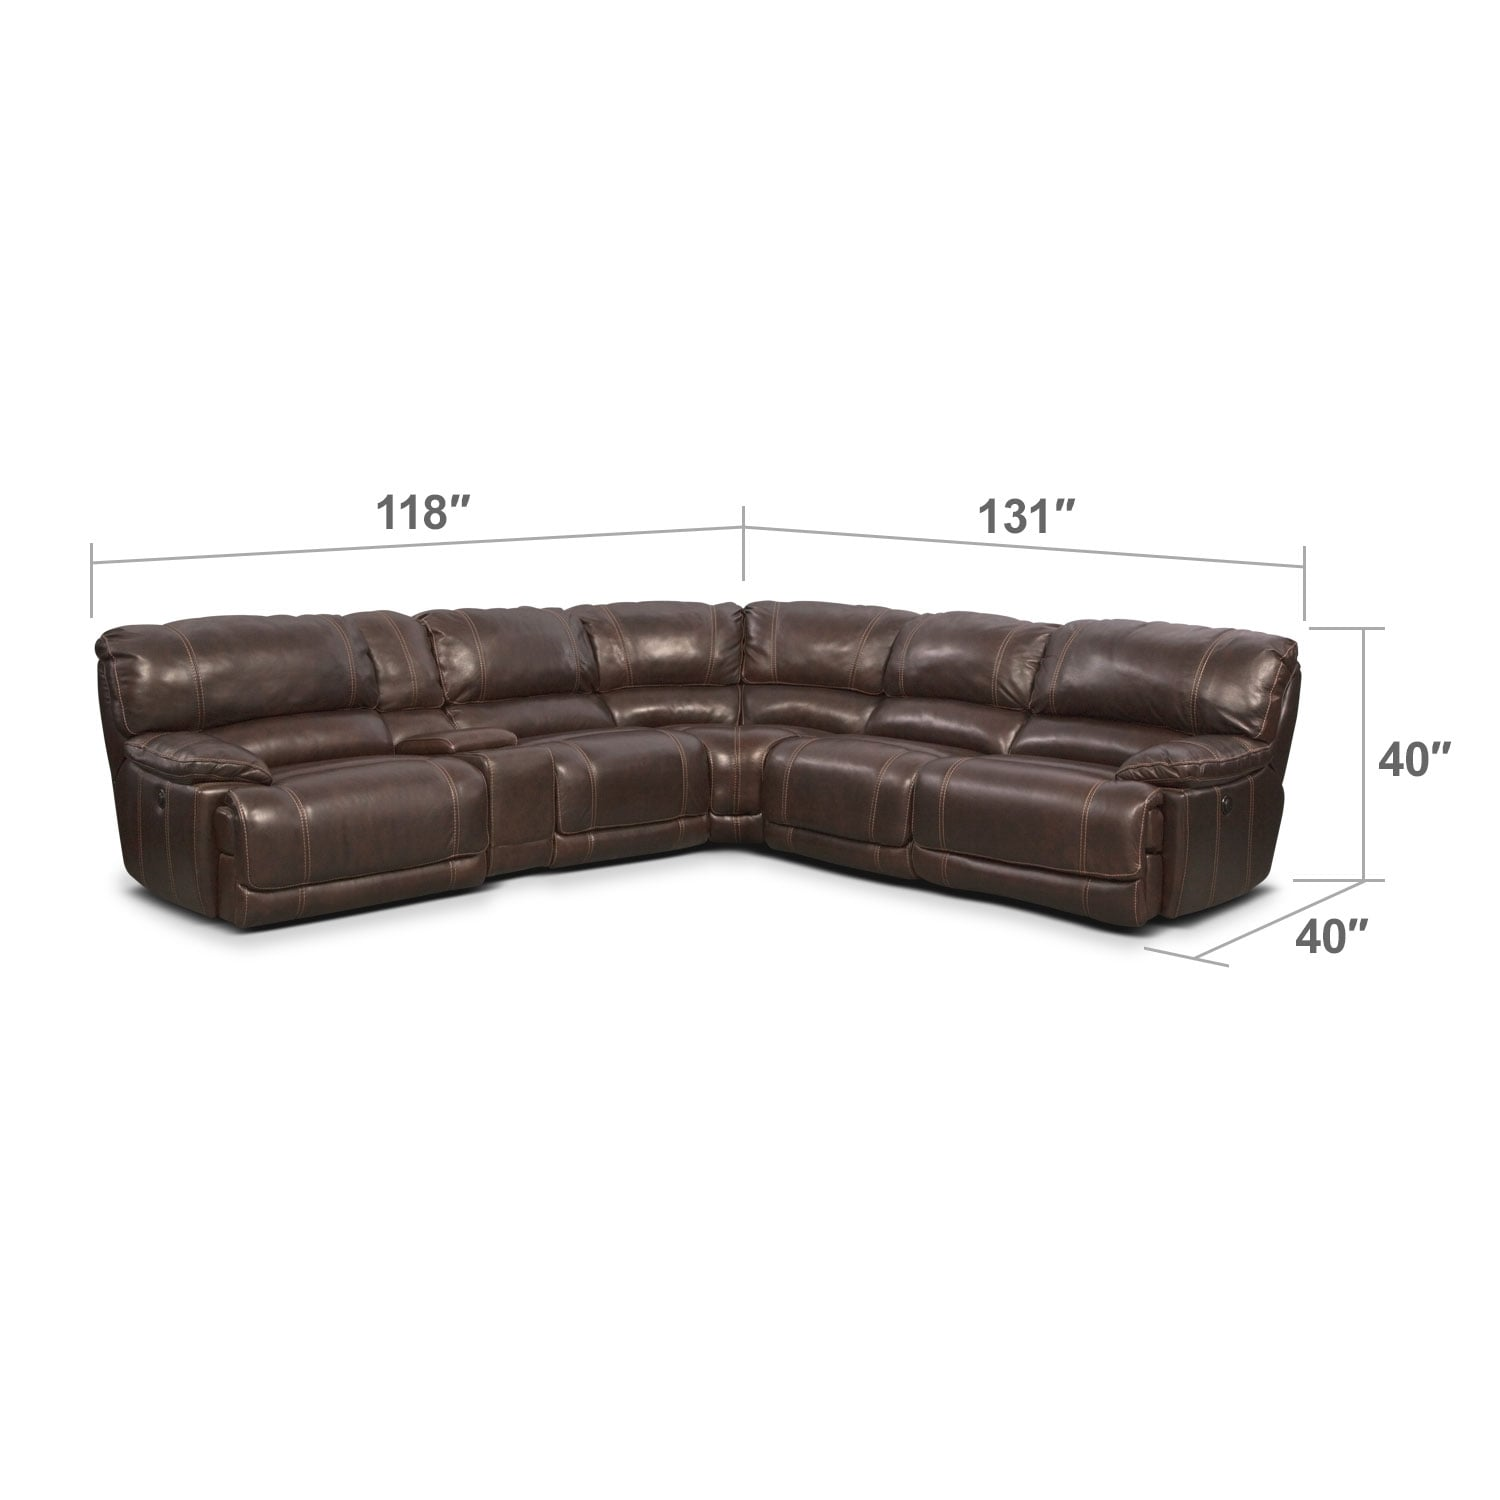 Midori 6 Pc Leather Power Reclining Sectional Sofa: St. Malo 6 Pc. Power Reclining Sectional (Alternate